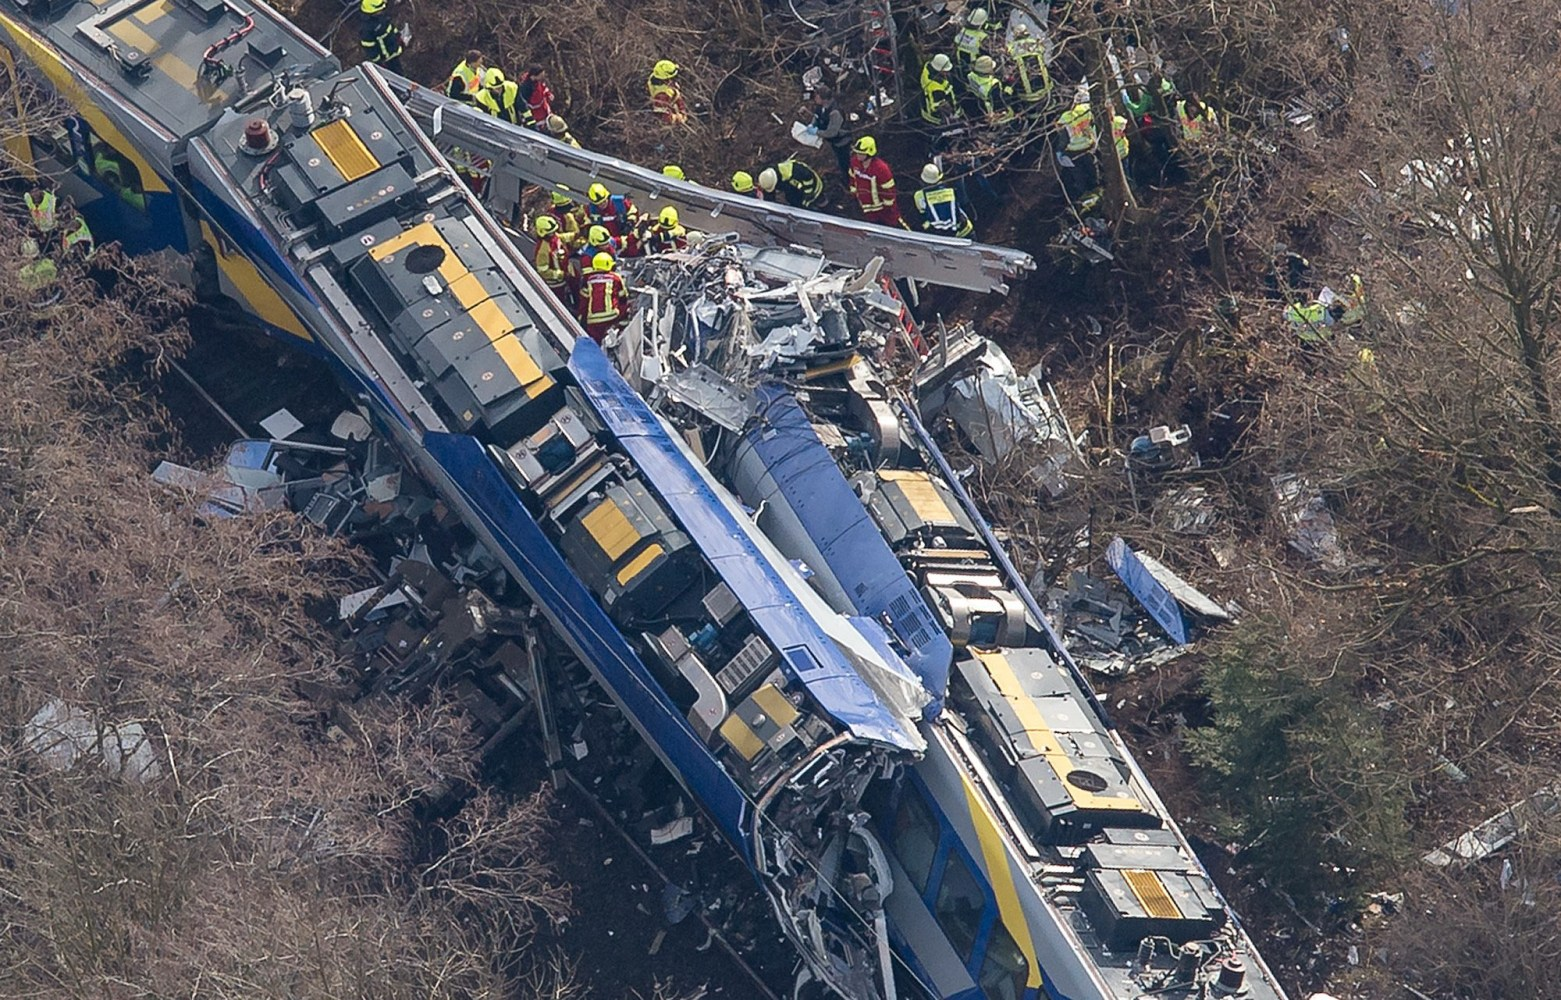 Investigation finds train dispatcher playing video games before deadly crash